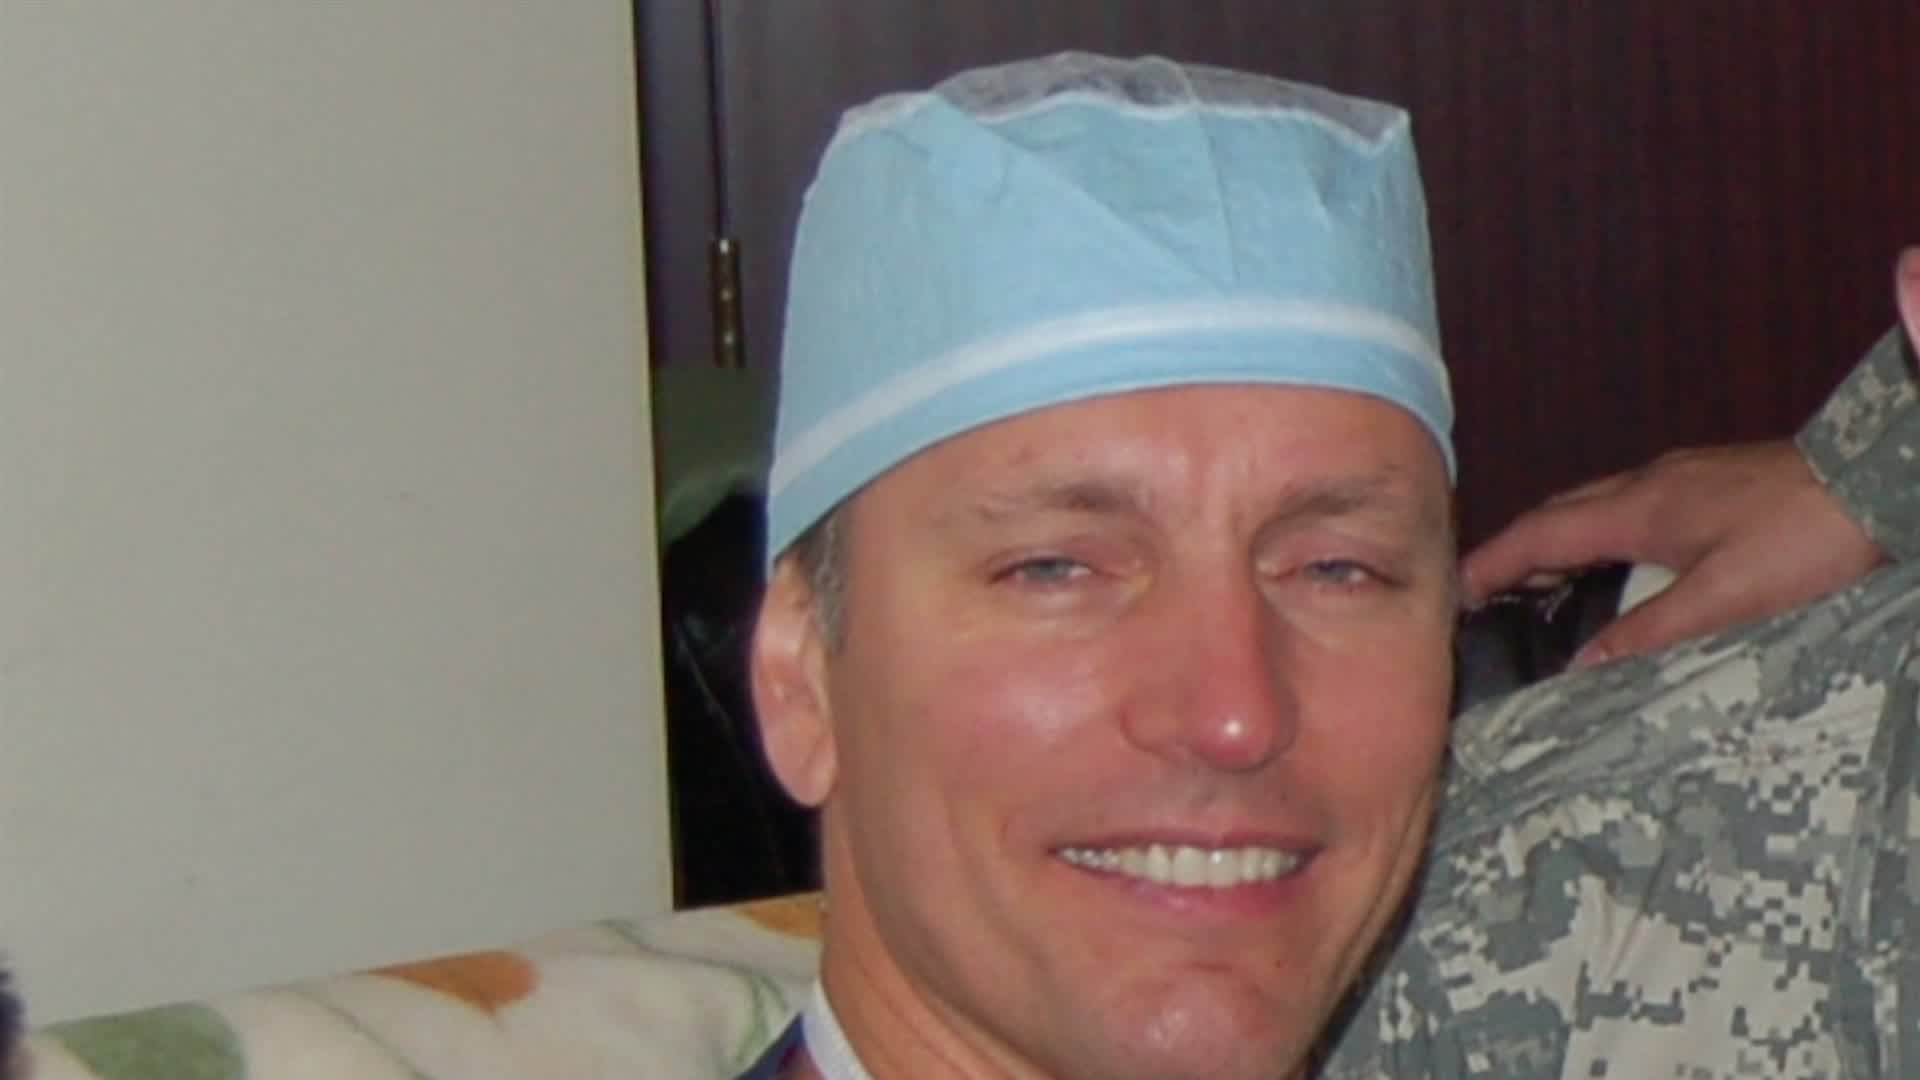 Murder for Hire: Eye Surgeon Dr. Michael Mockovak Loses Control